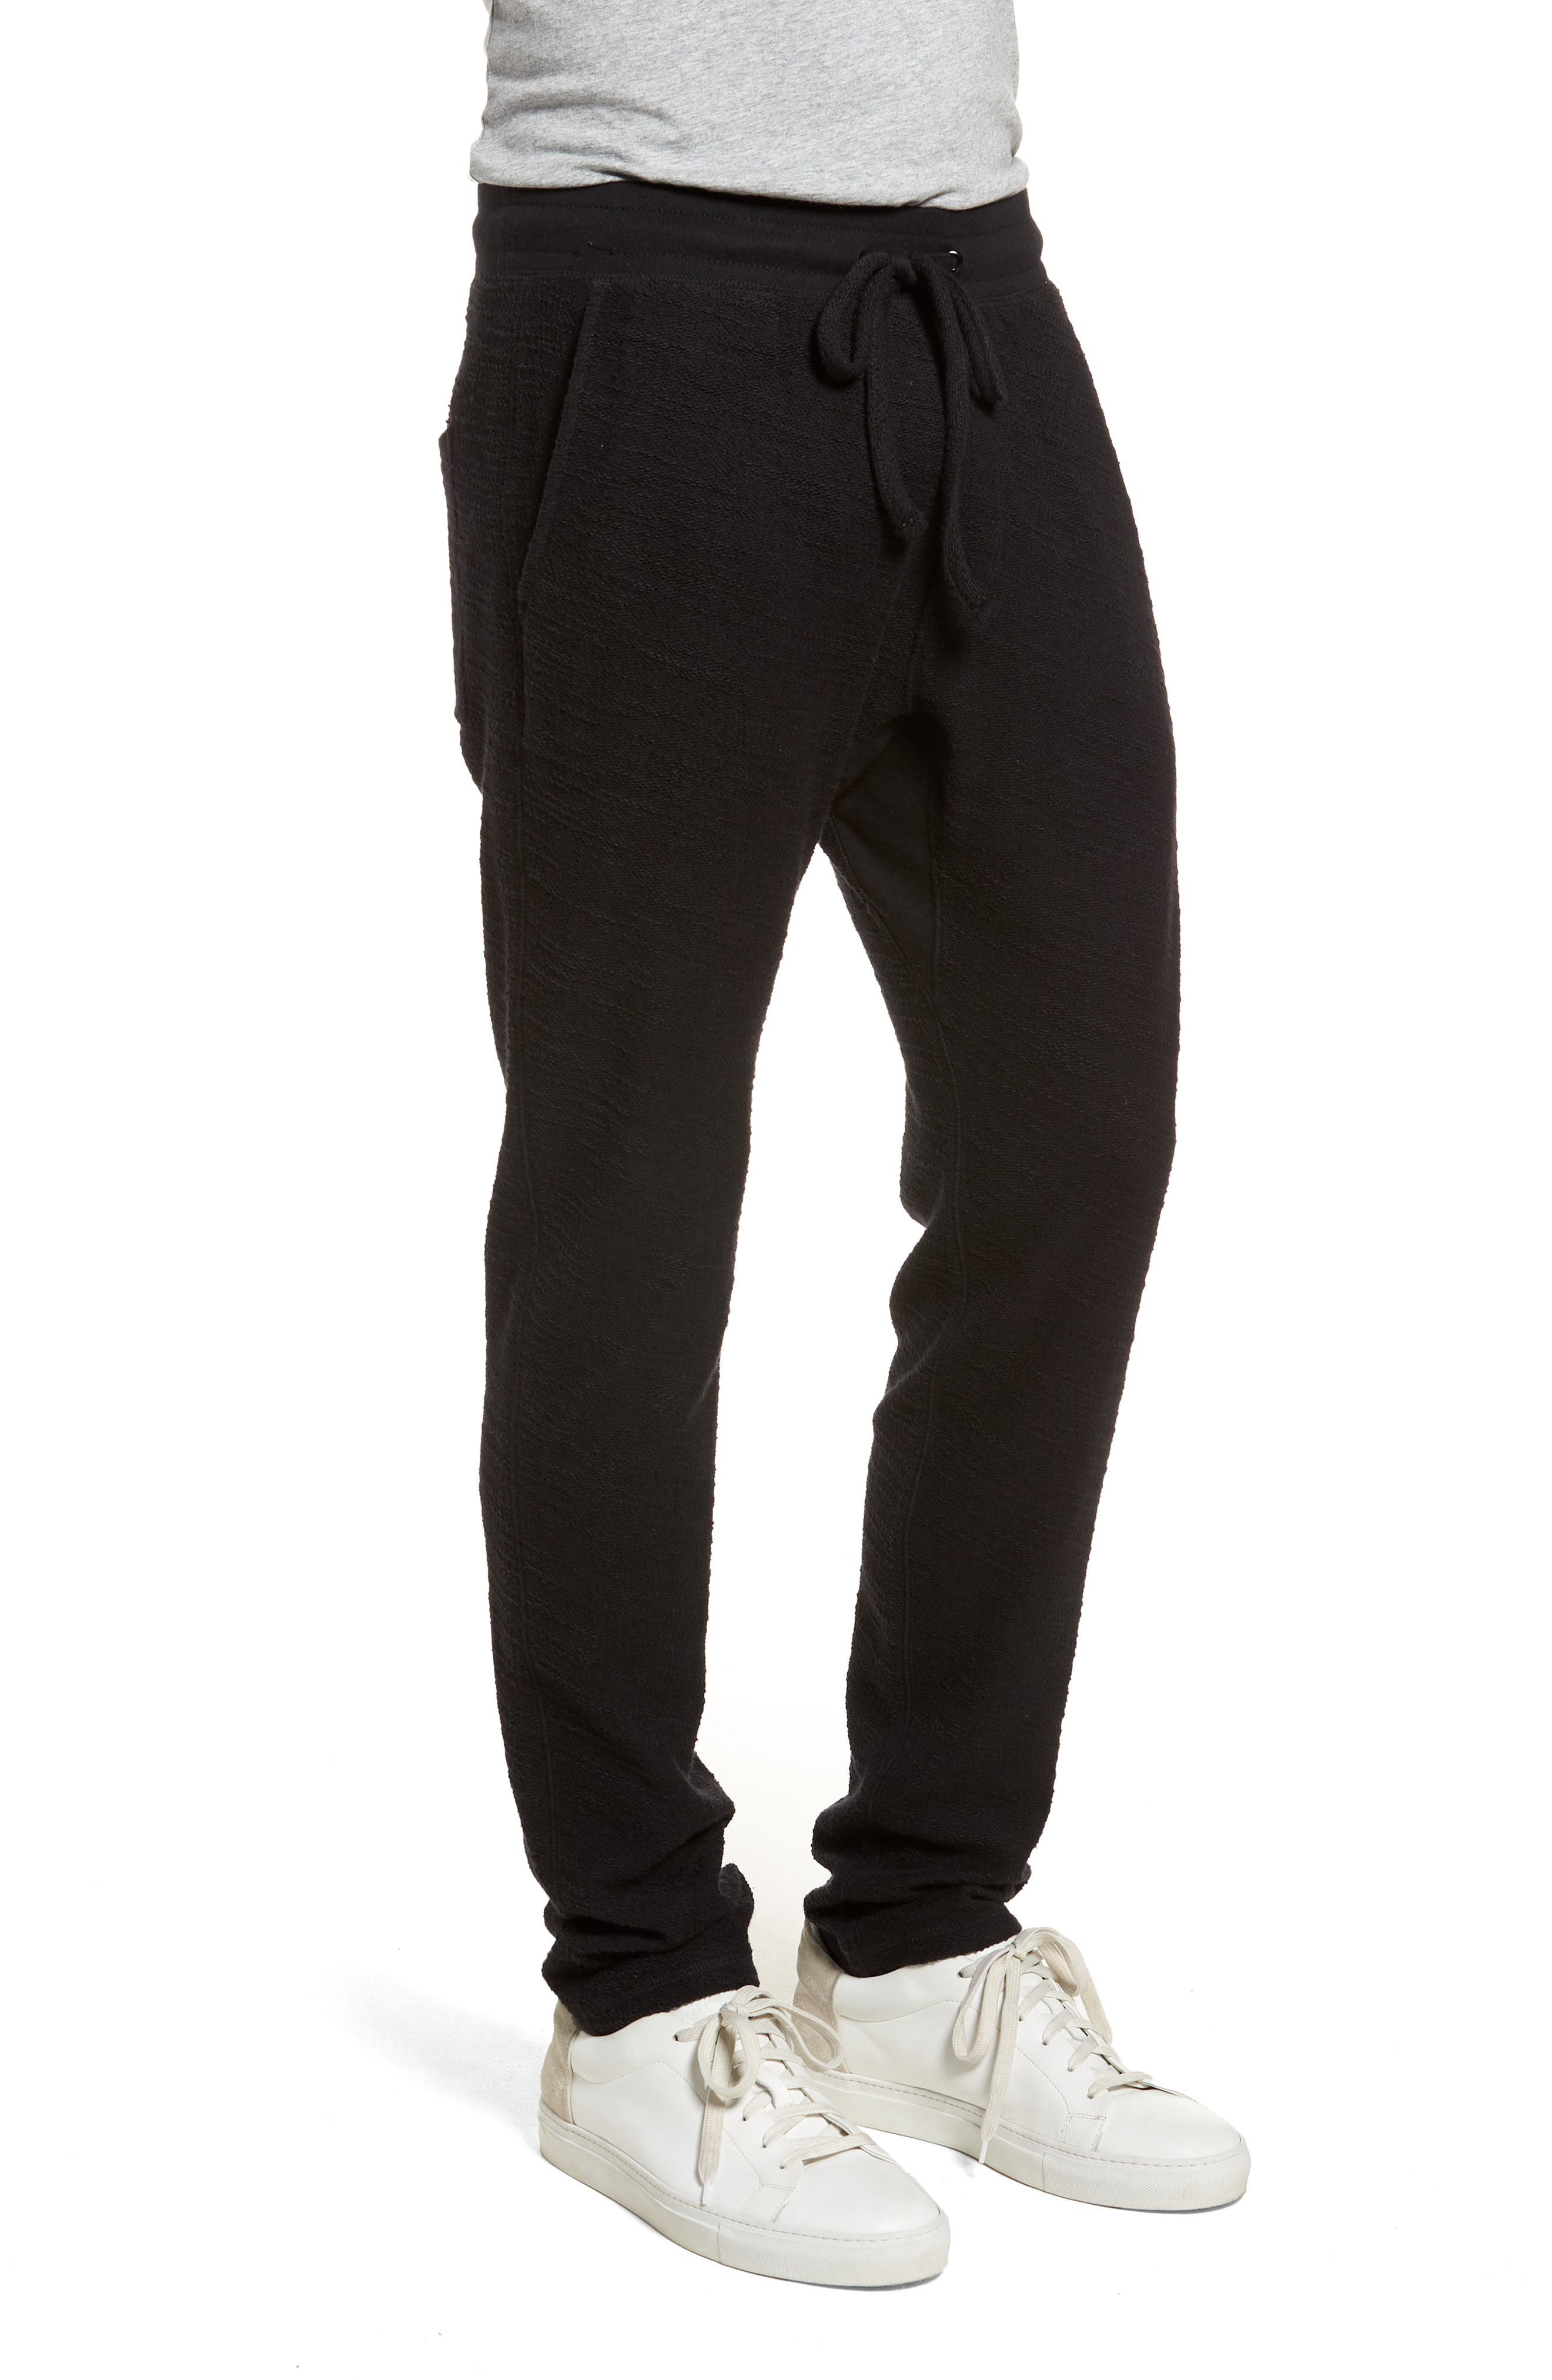 Alternate Image 3  - Goodlife Terry Cloth Cotton Blend Pants